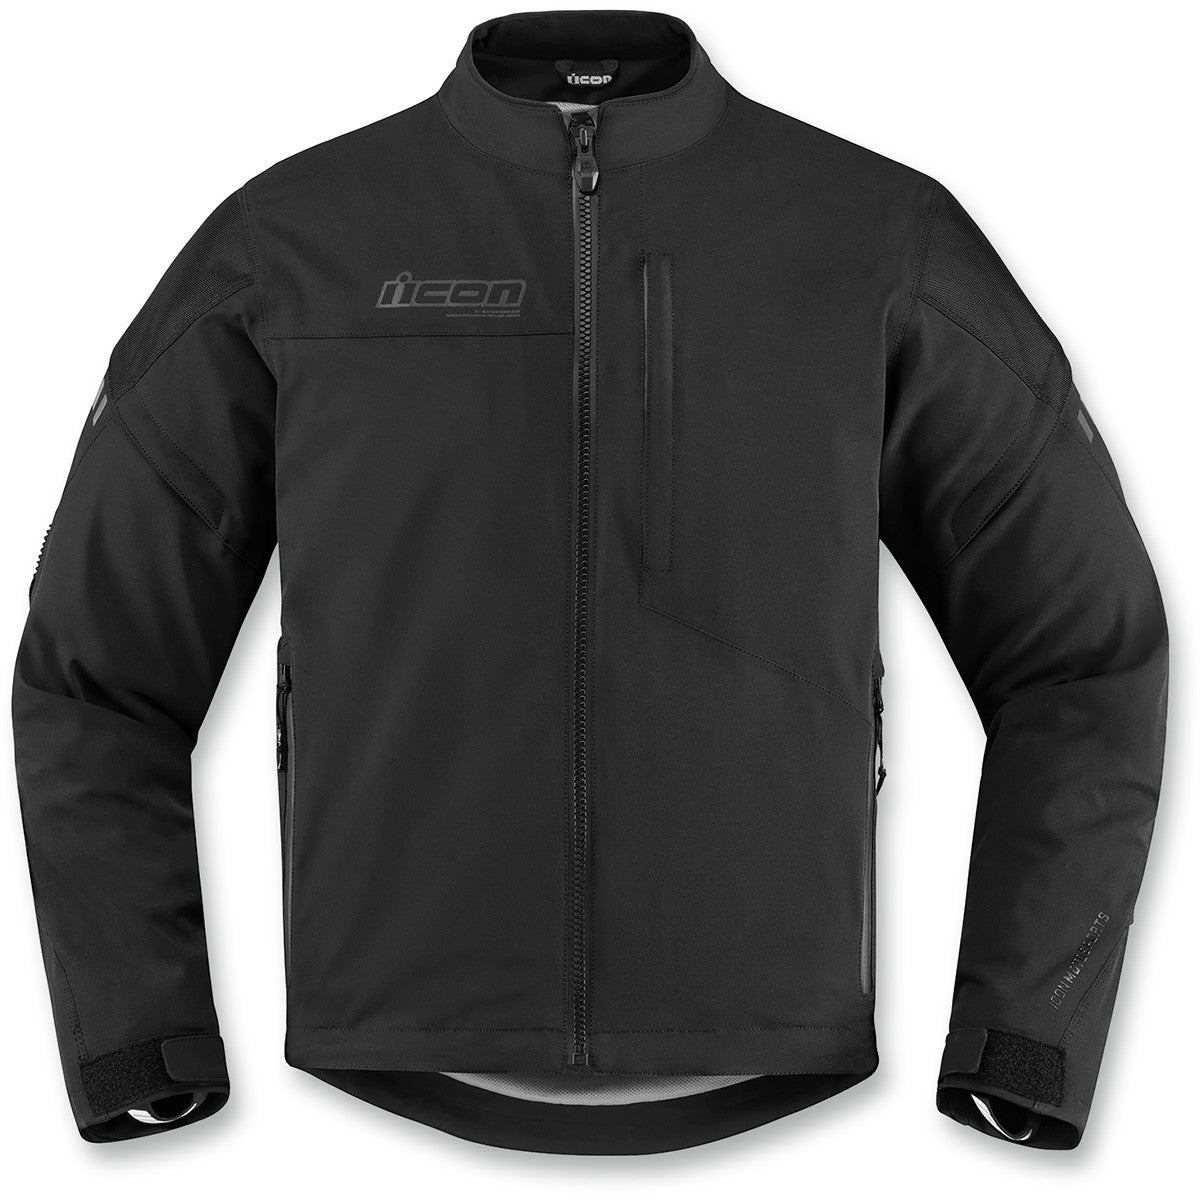 ICON TARMAC JACKETS